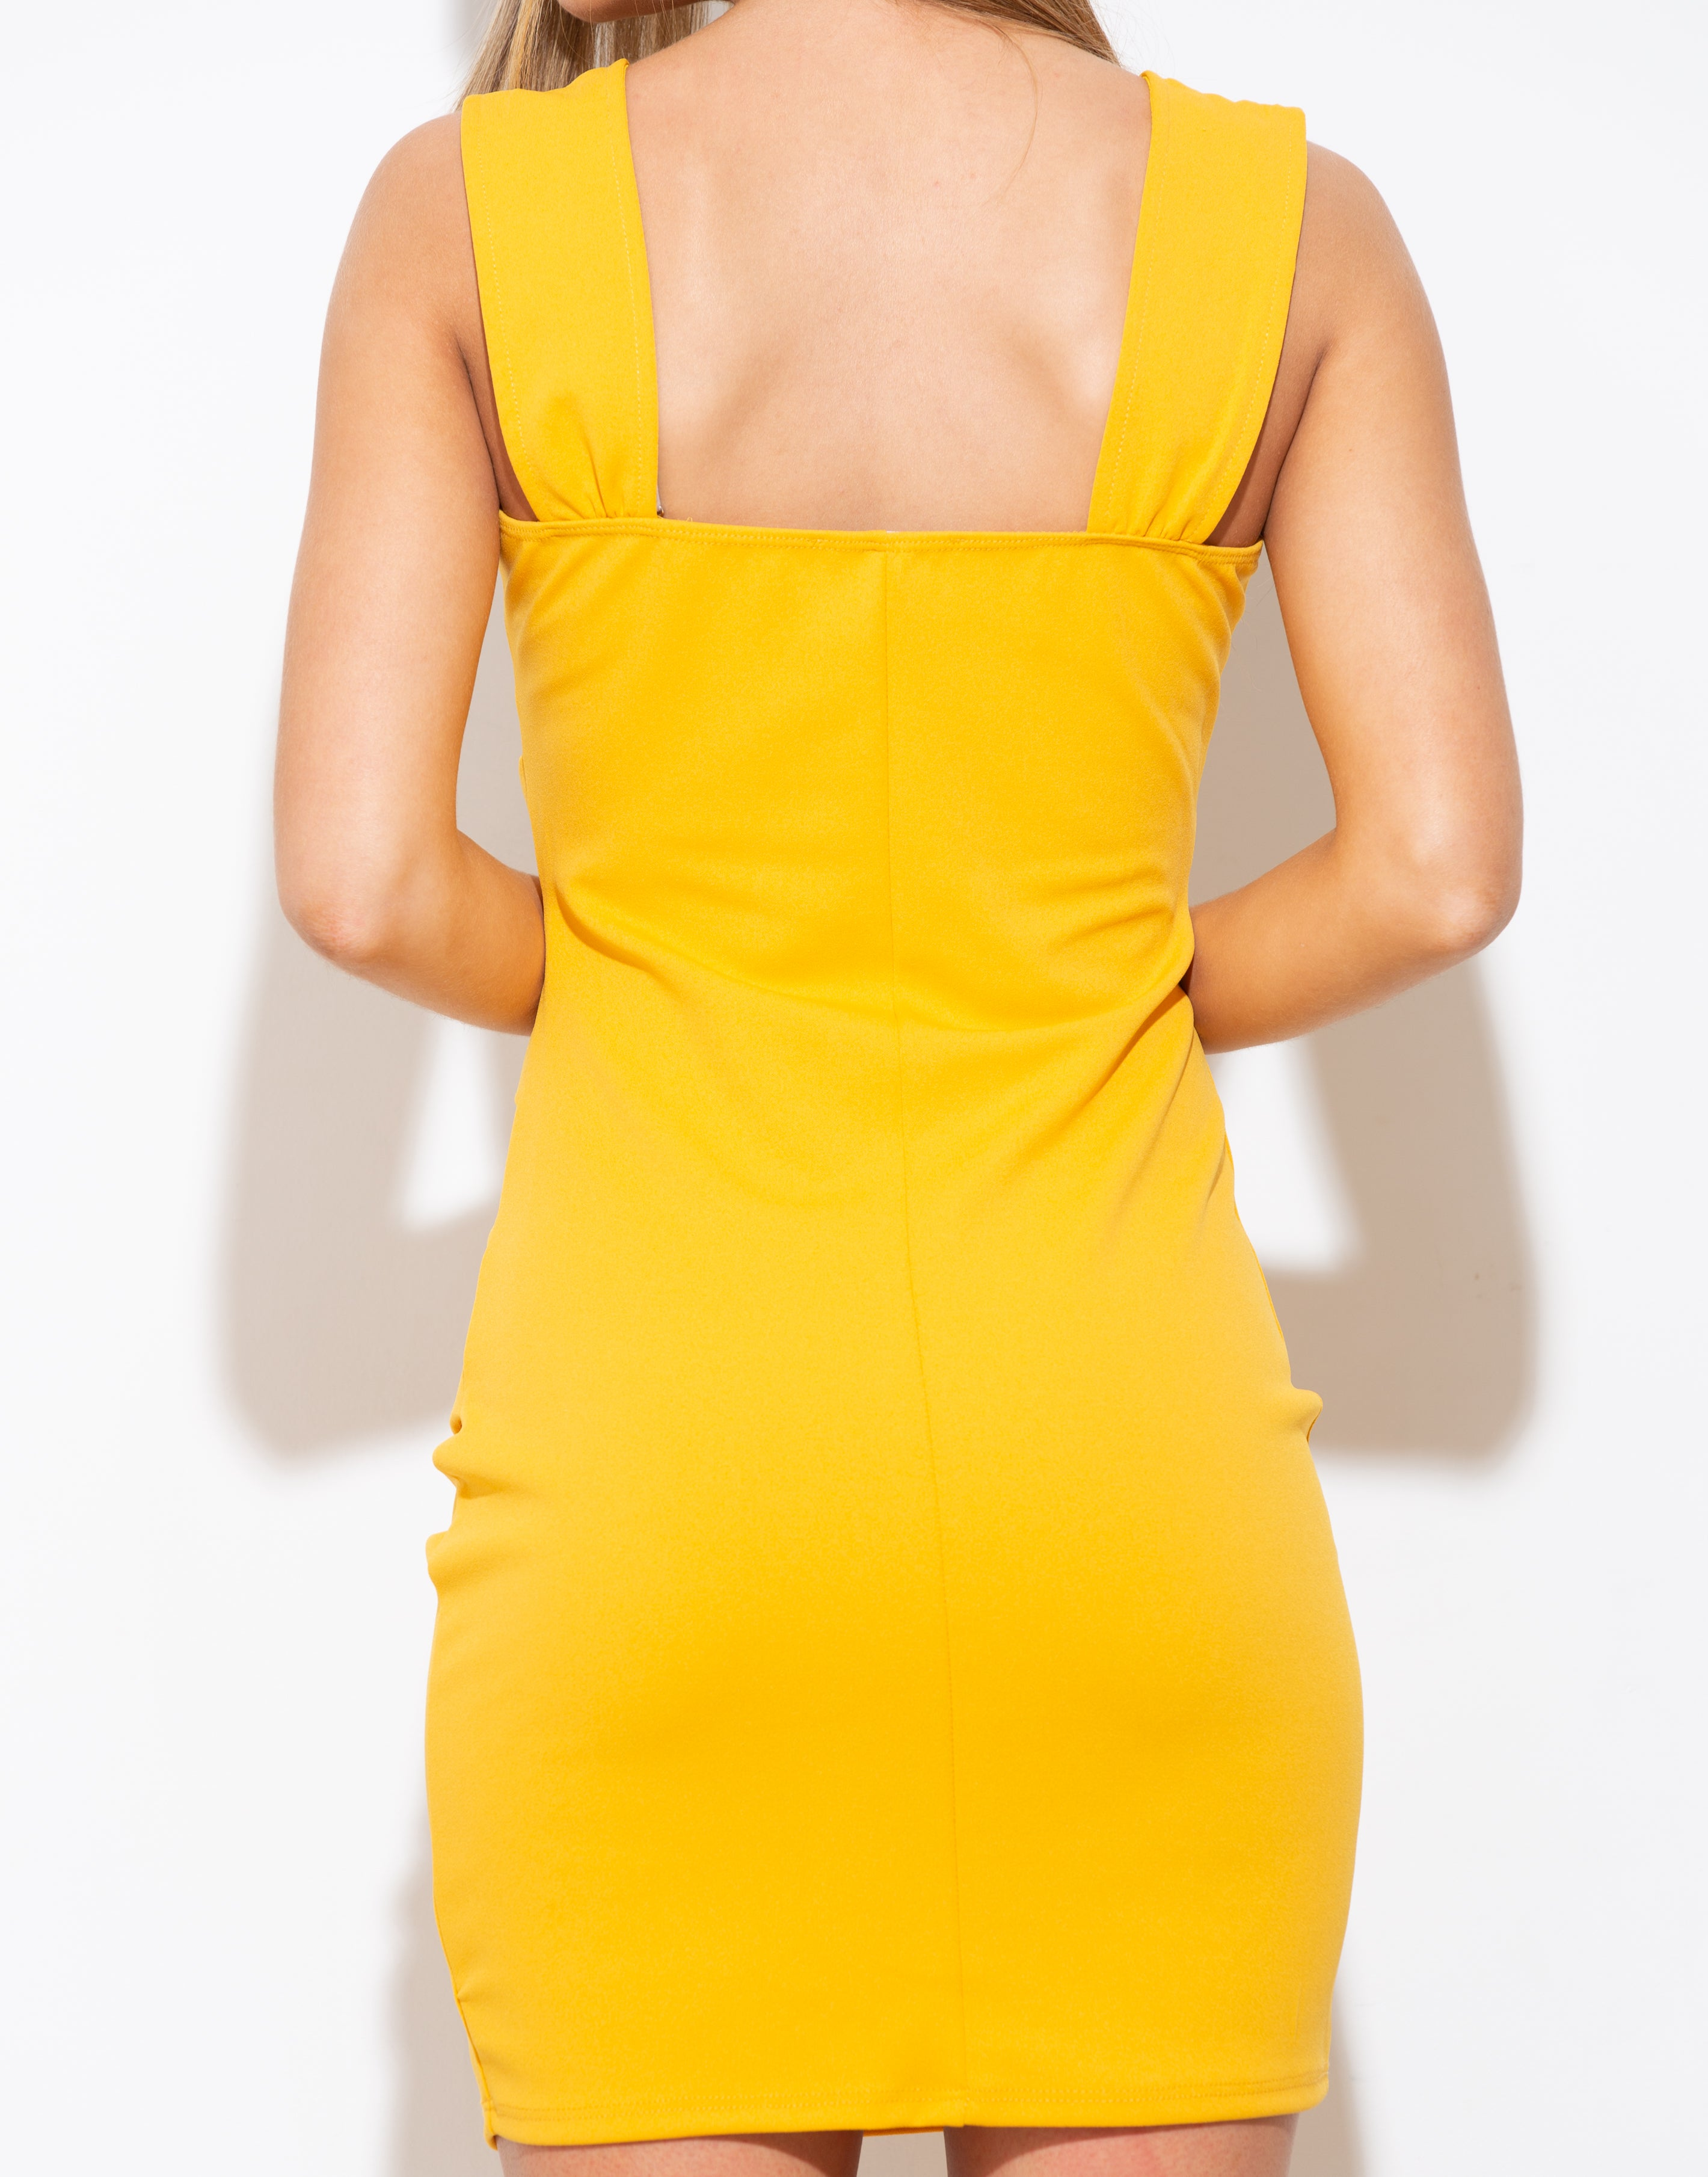 Just For Fun Yellow Mini Dress - impromptu boutique